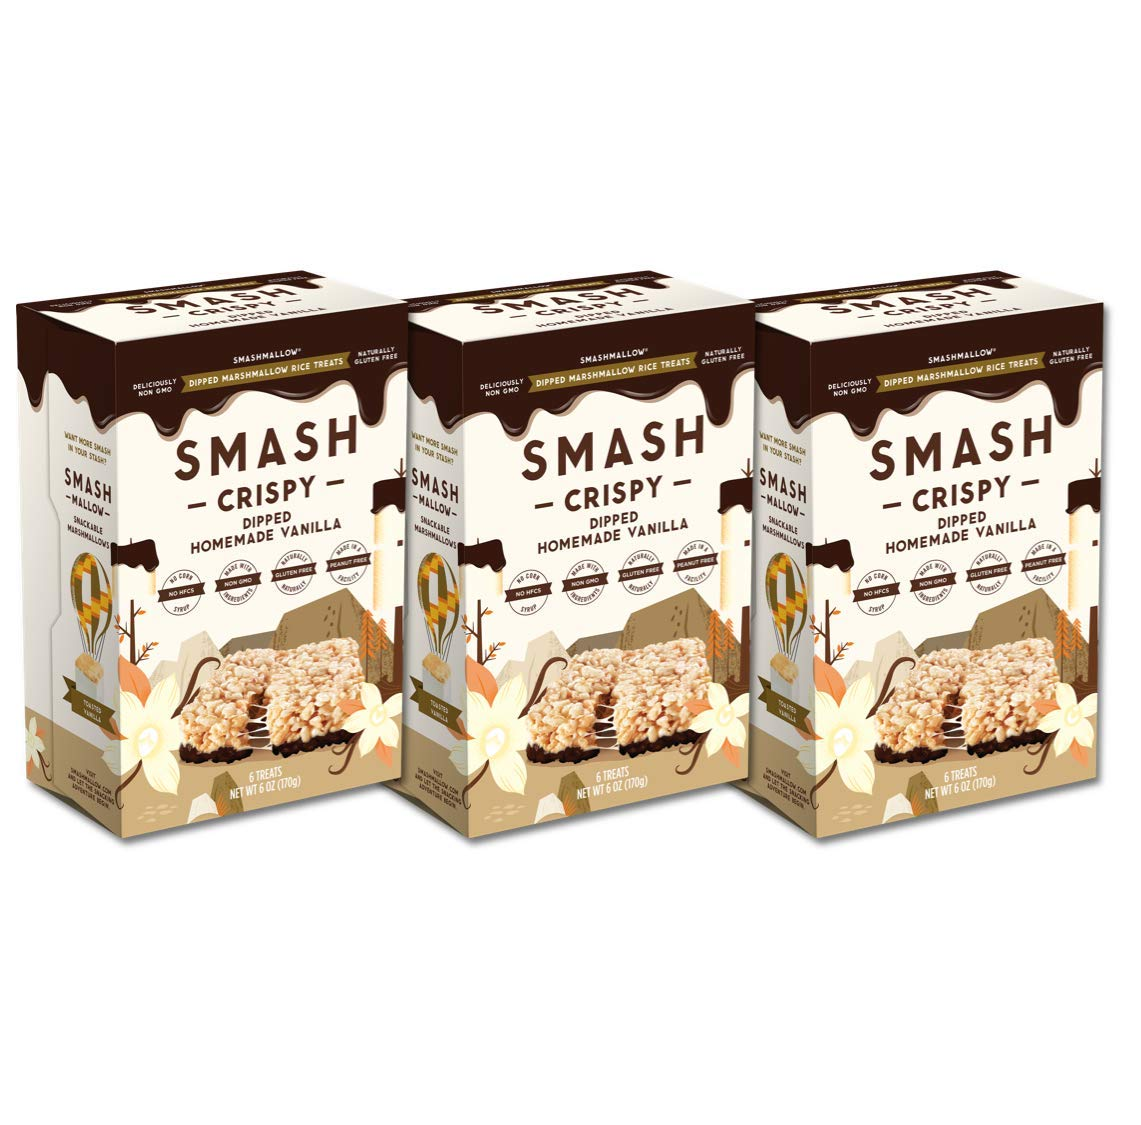 Super sale Chocolate Challenge the lowest price Dipped Homemade Vanilla Rice Crispy by SMASHMALLOW N